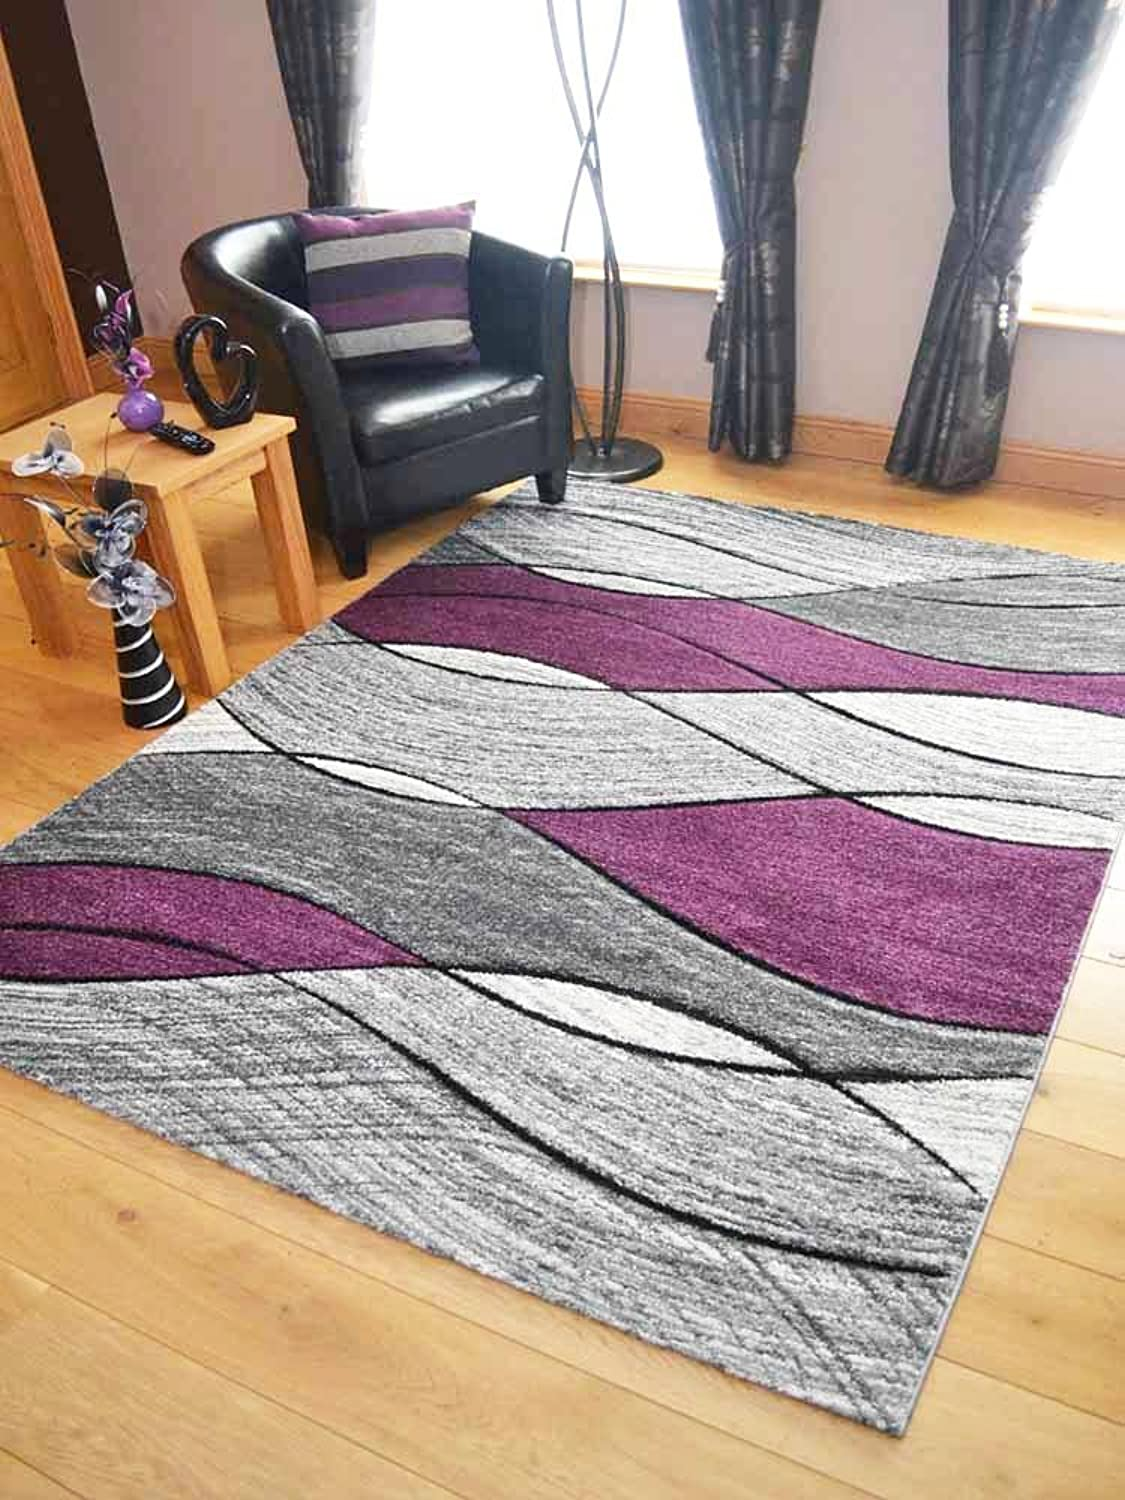 Impulse Purple Silver Wave Thick Quality Modern Carved Rugs Runner Small Extra Large Soft (120cm x 170cm)